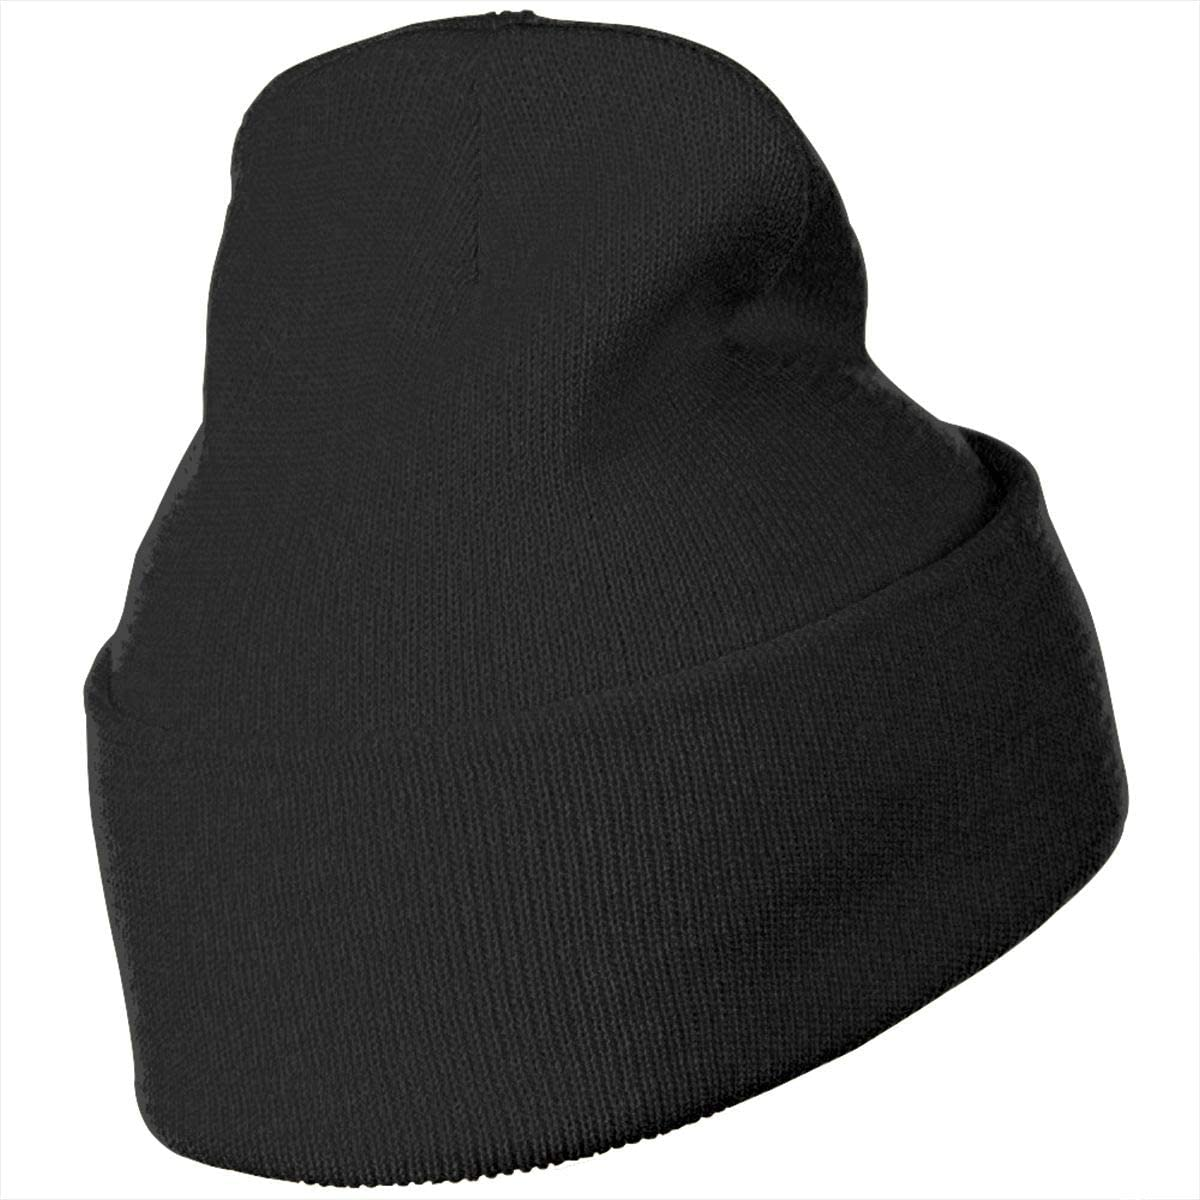 JimHappy Characters Letters Hat for Men and Women Winter Warm Hats Knit Slouchy Thick Skull Cap Black